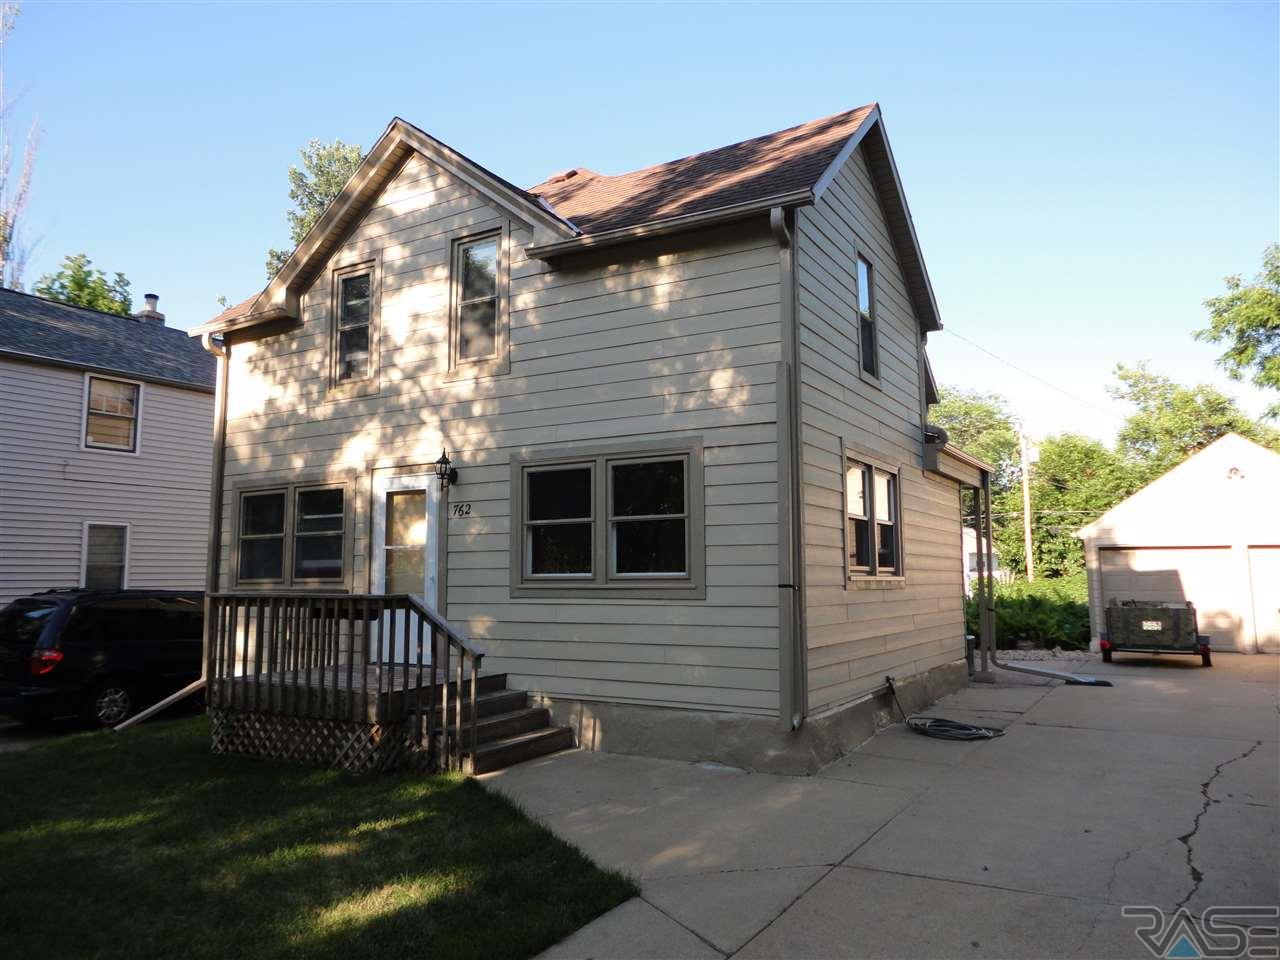 762 S 3rd Ave, SIOUX FALLS